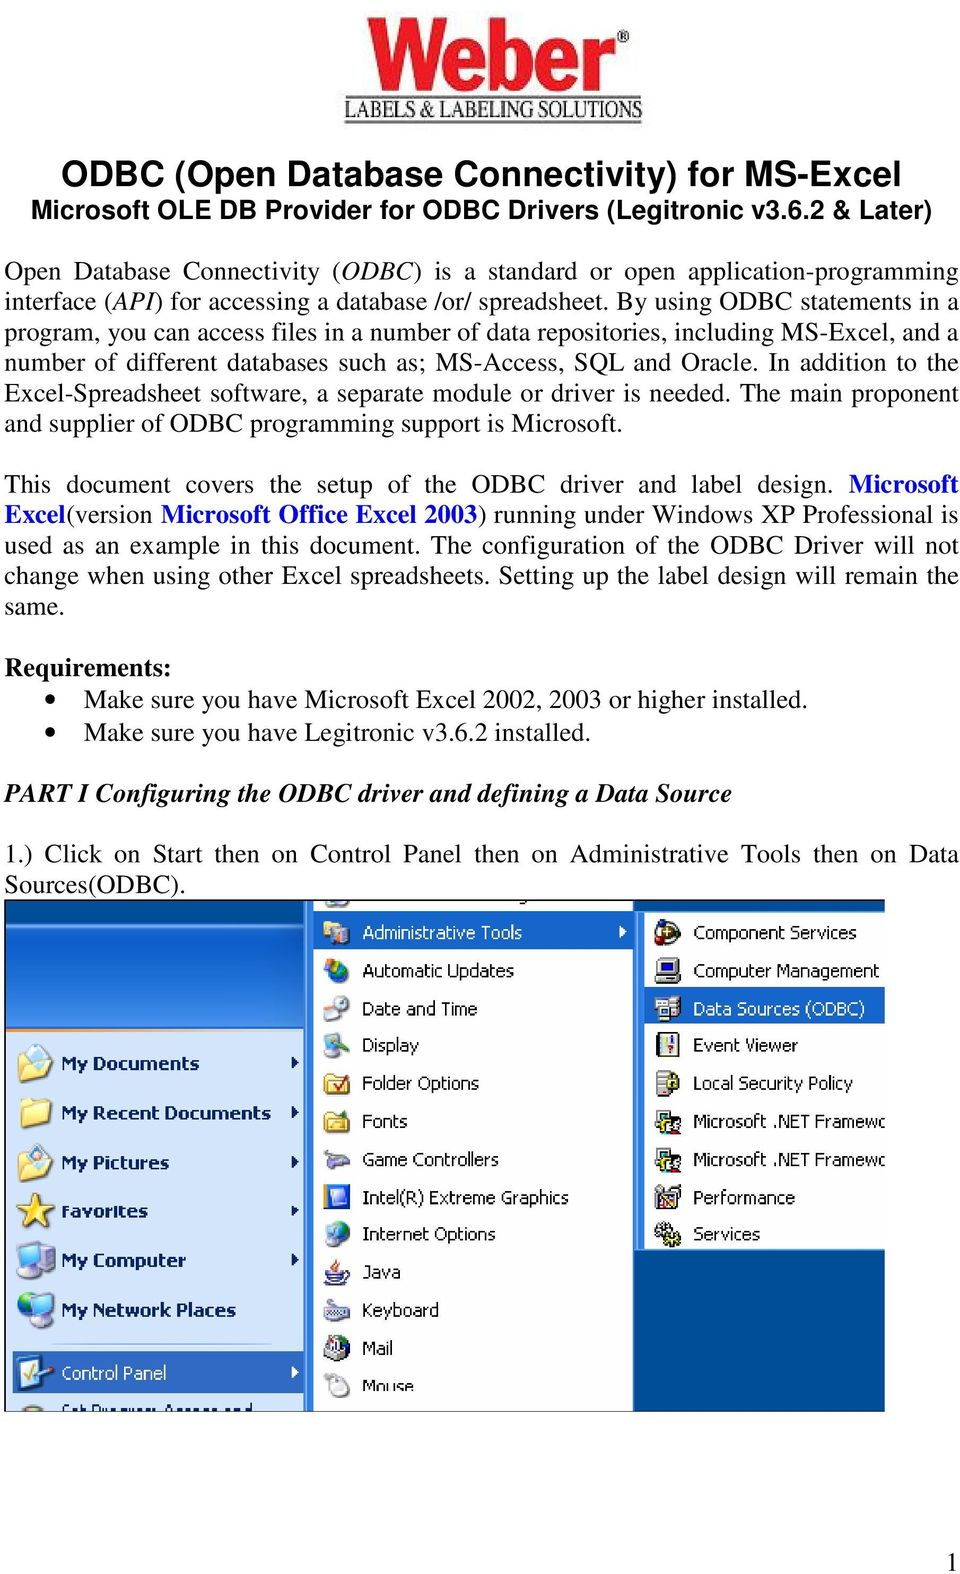 ODBC (Open Database Connectivity) for MS-Excel Microsoft OLE DB